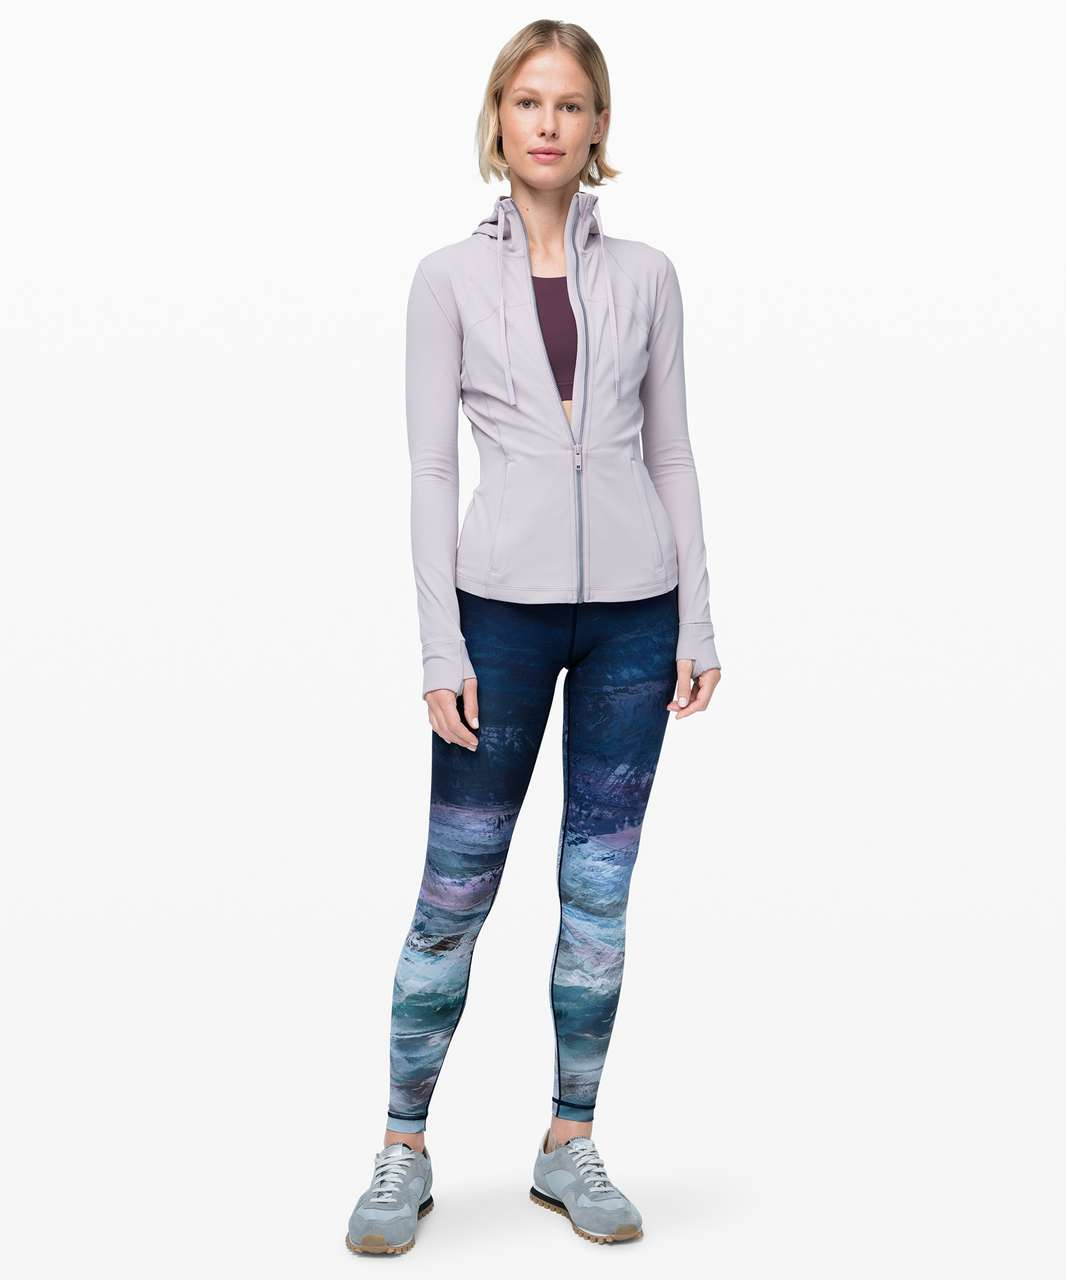 "Lululemon Wunder Under High-Rise Tight *Engineered Full-On Luxtreme 28"" - Panorama Wunder Under High Rise Tight"